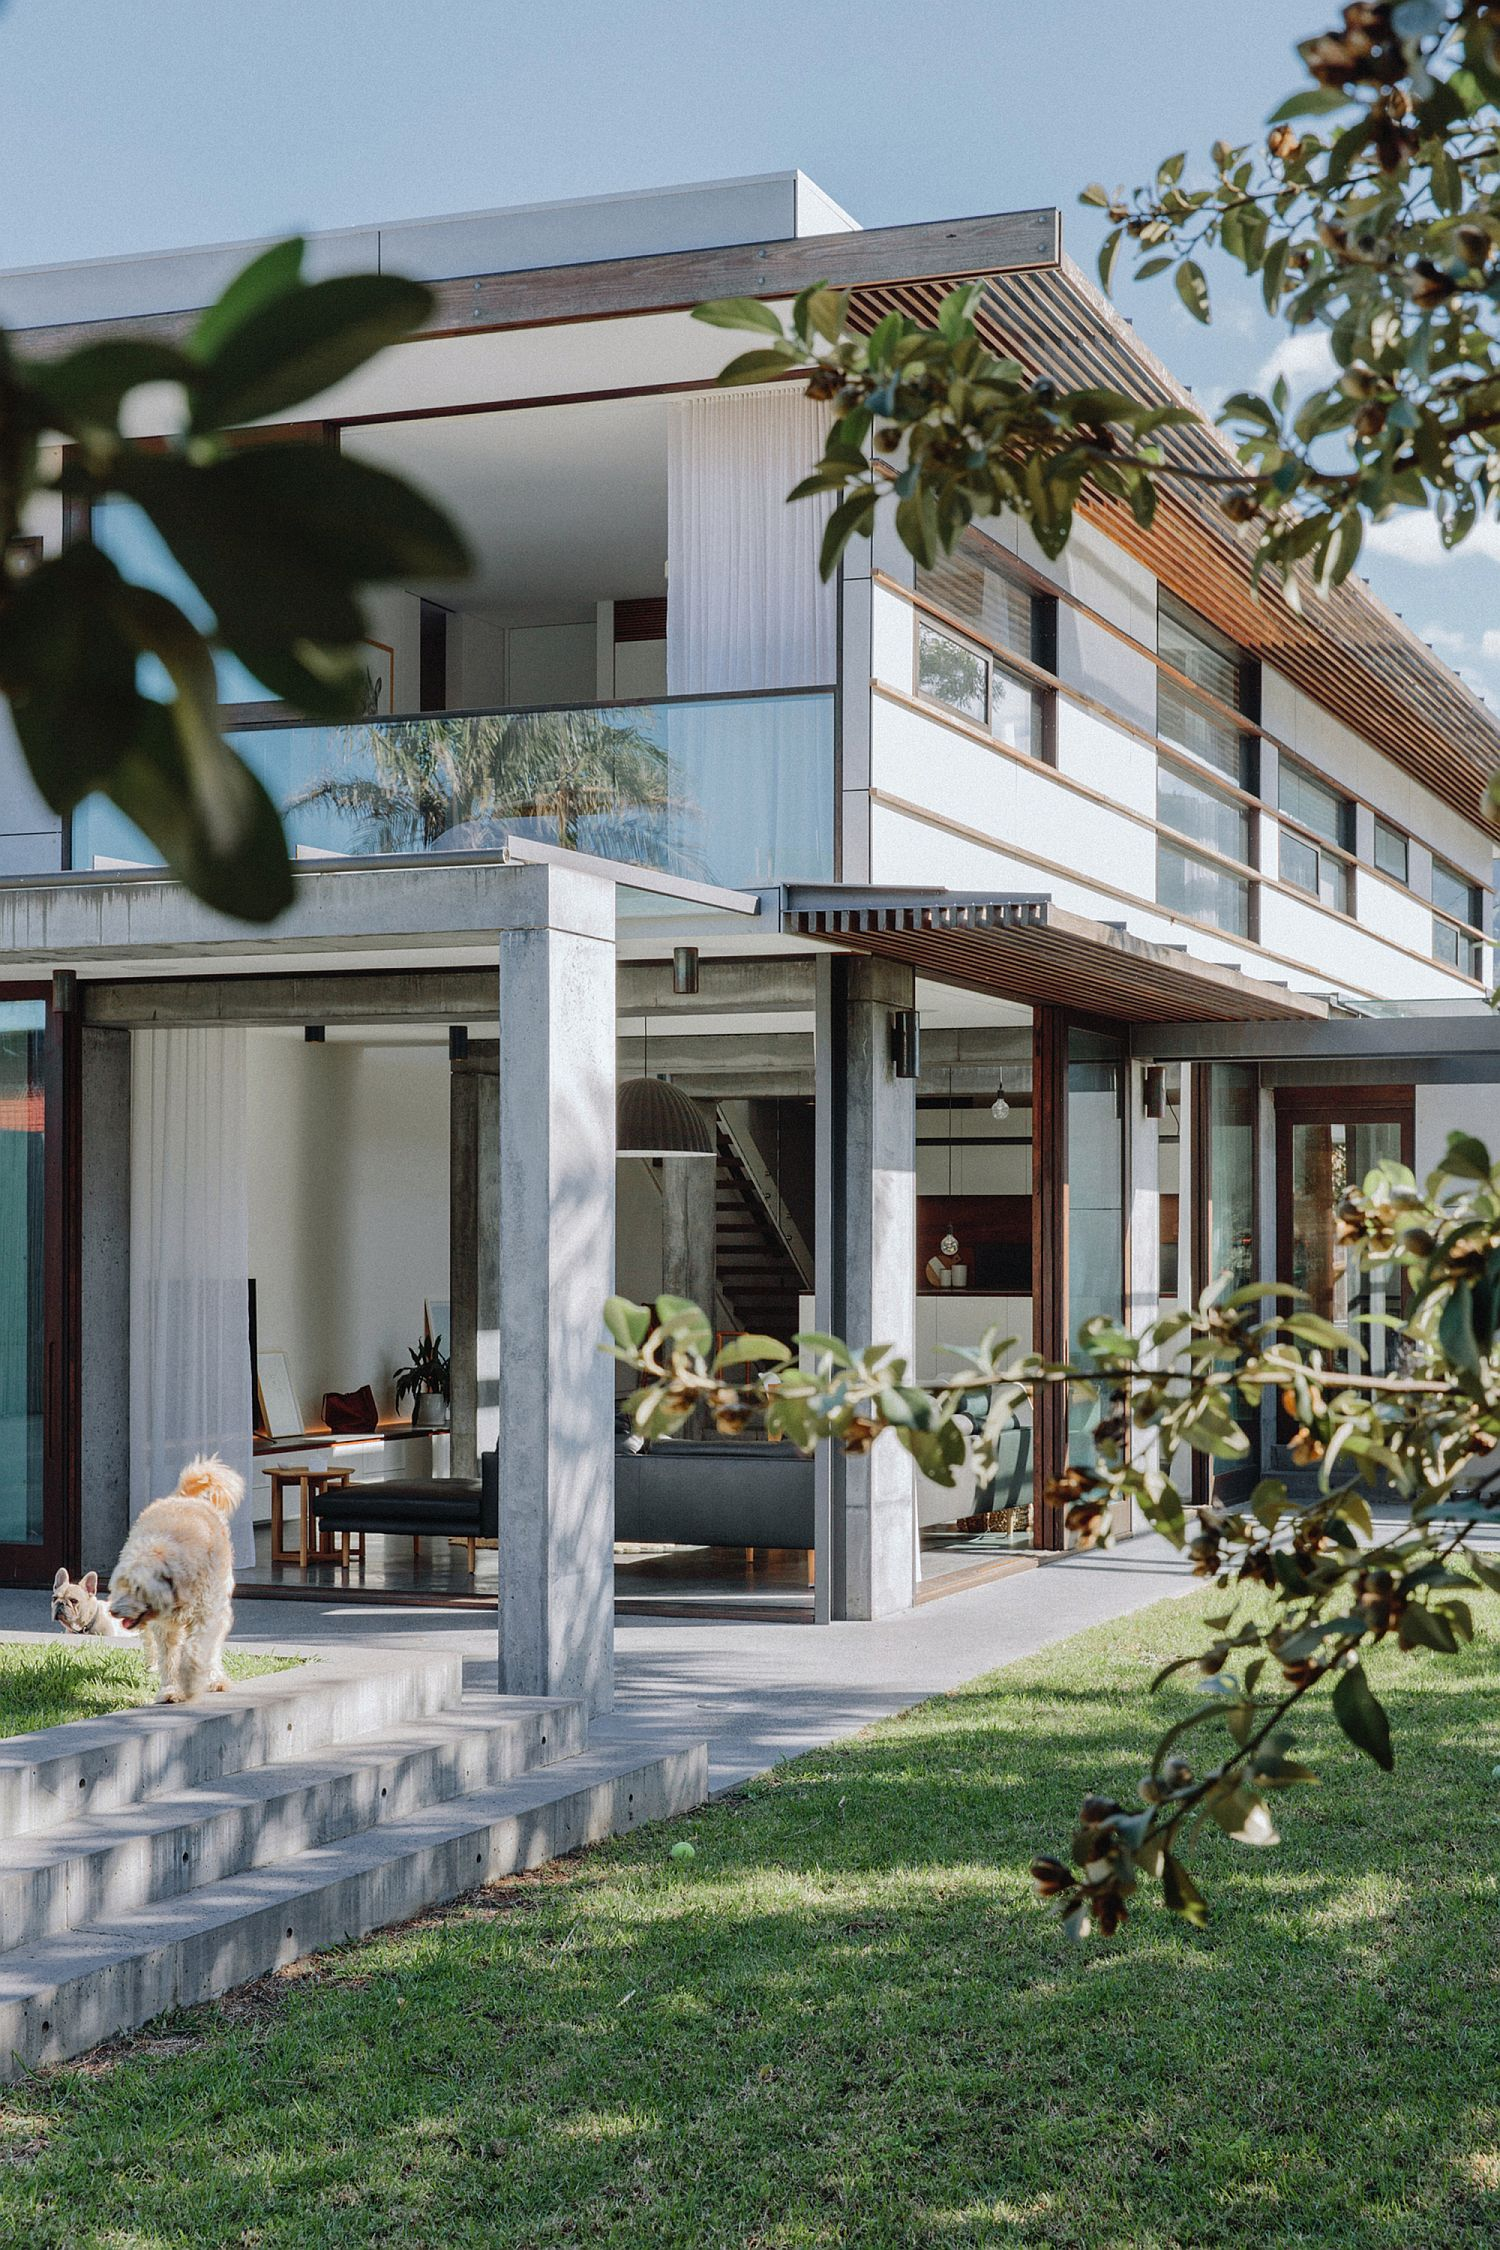 Concrete Timber And Metal Home Down Under Wows With